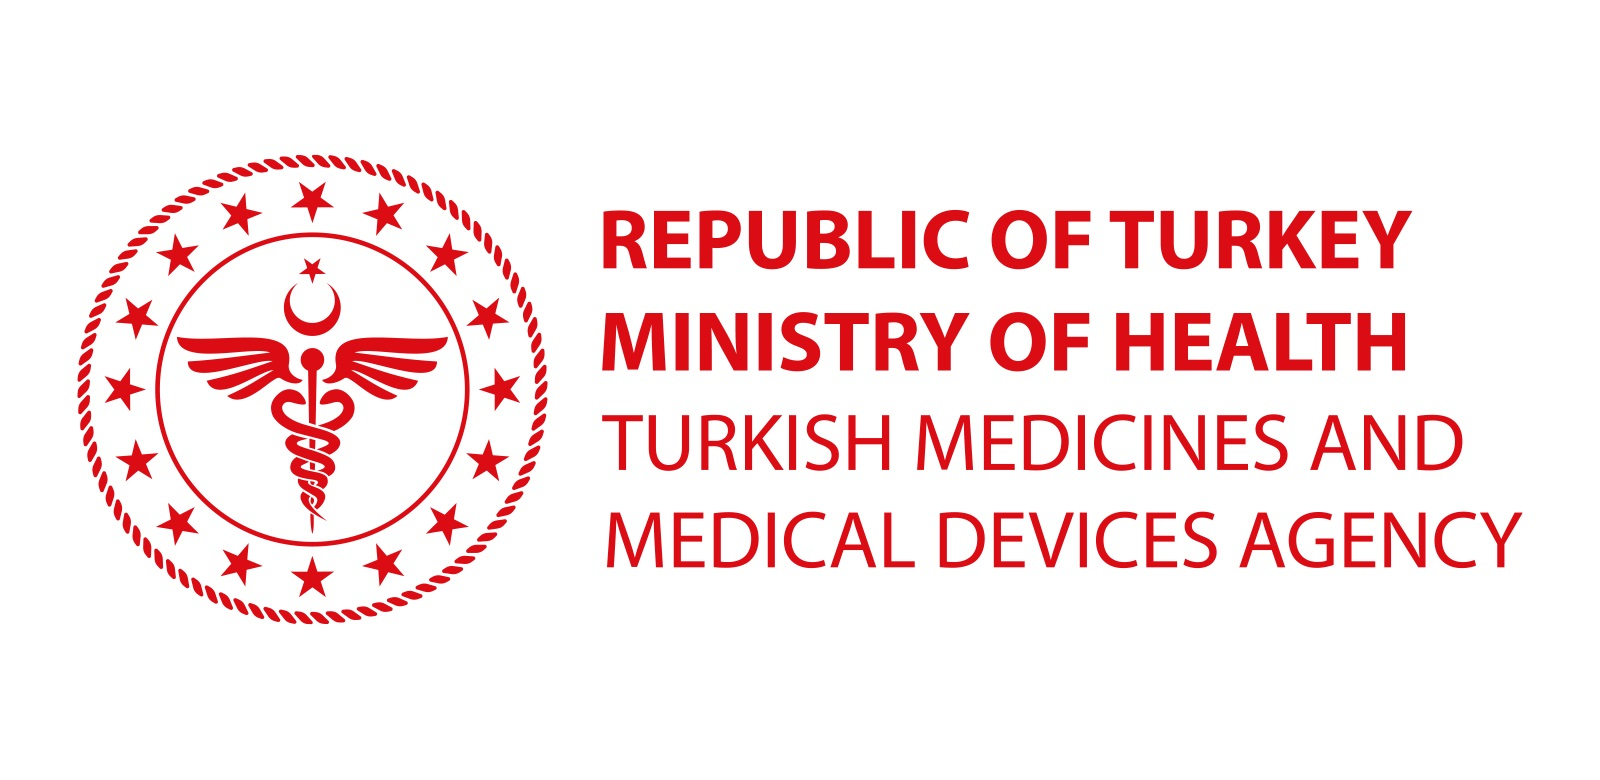 Turkish Medicines and Medical Devices Agency